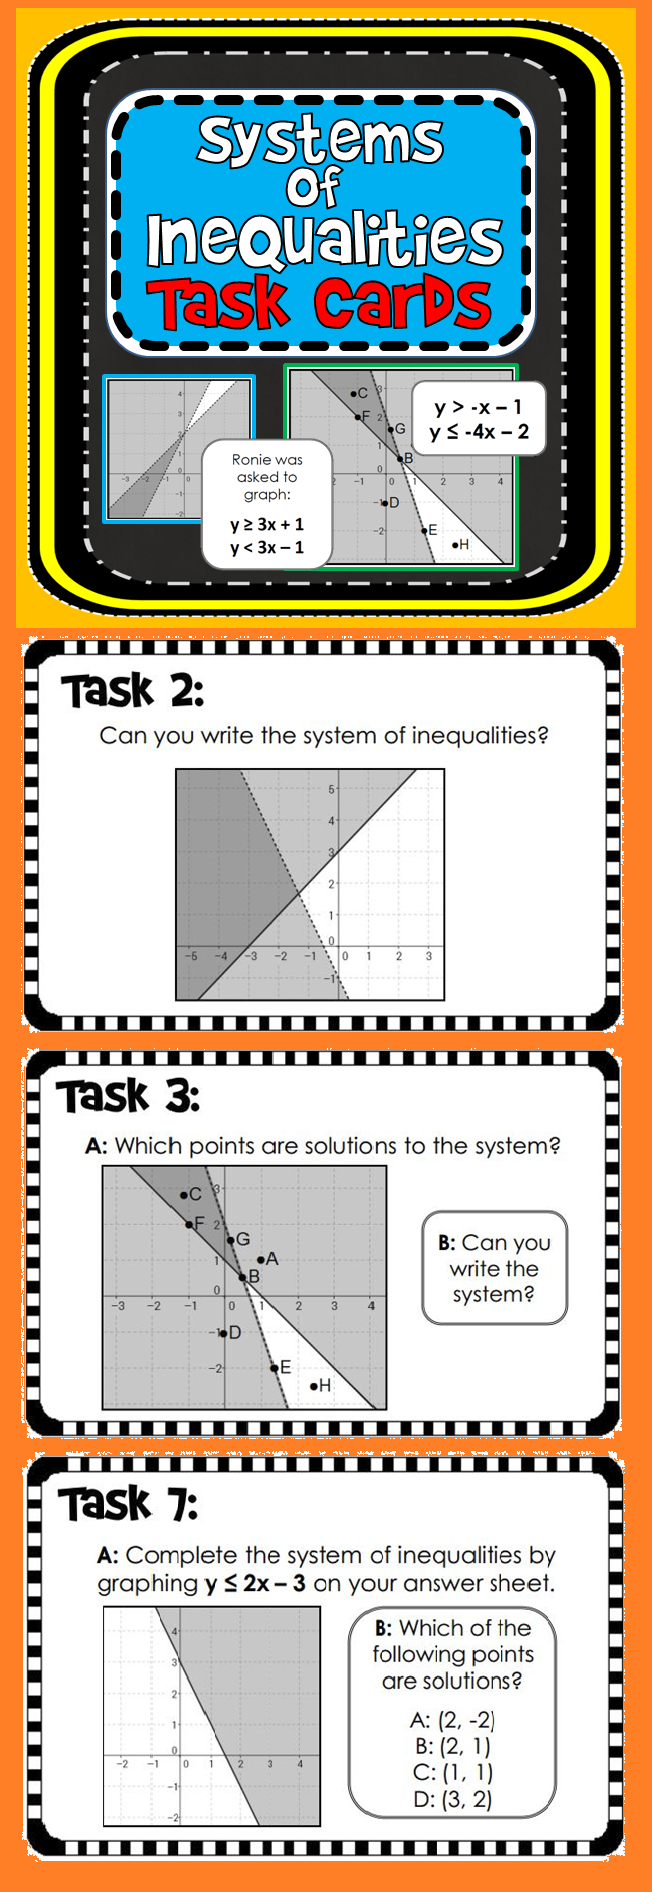 Systems of Inequalities Task Cards Students, Key and Algebra